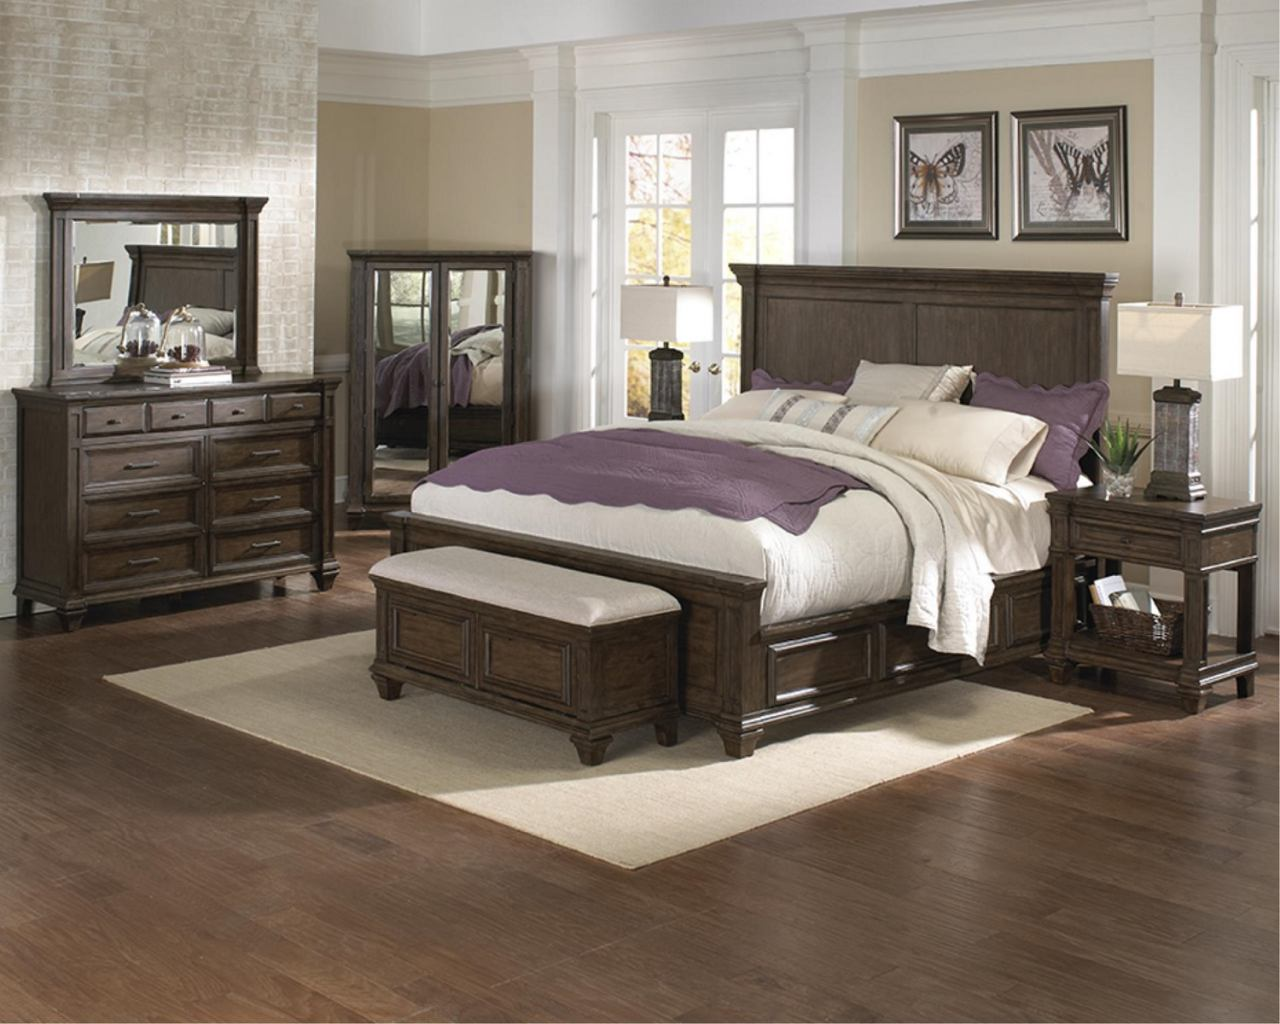 A-America Furniture Gallatin 4-Piece Panel with Storage Bedroom Set in Timeworn Mahogany CODE:UNIV20 for 20% Off